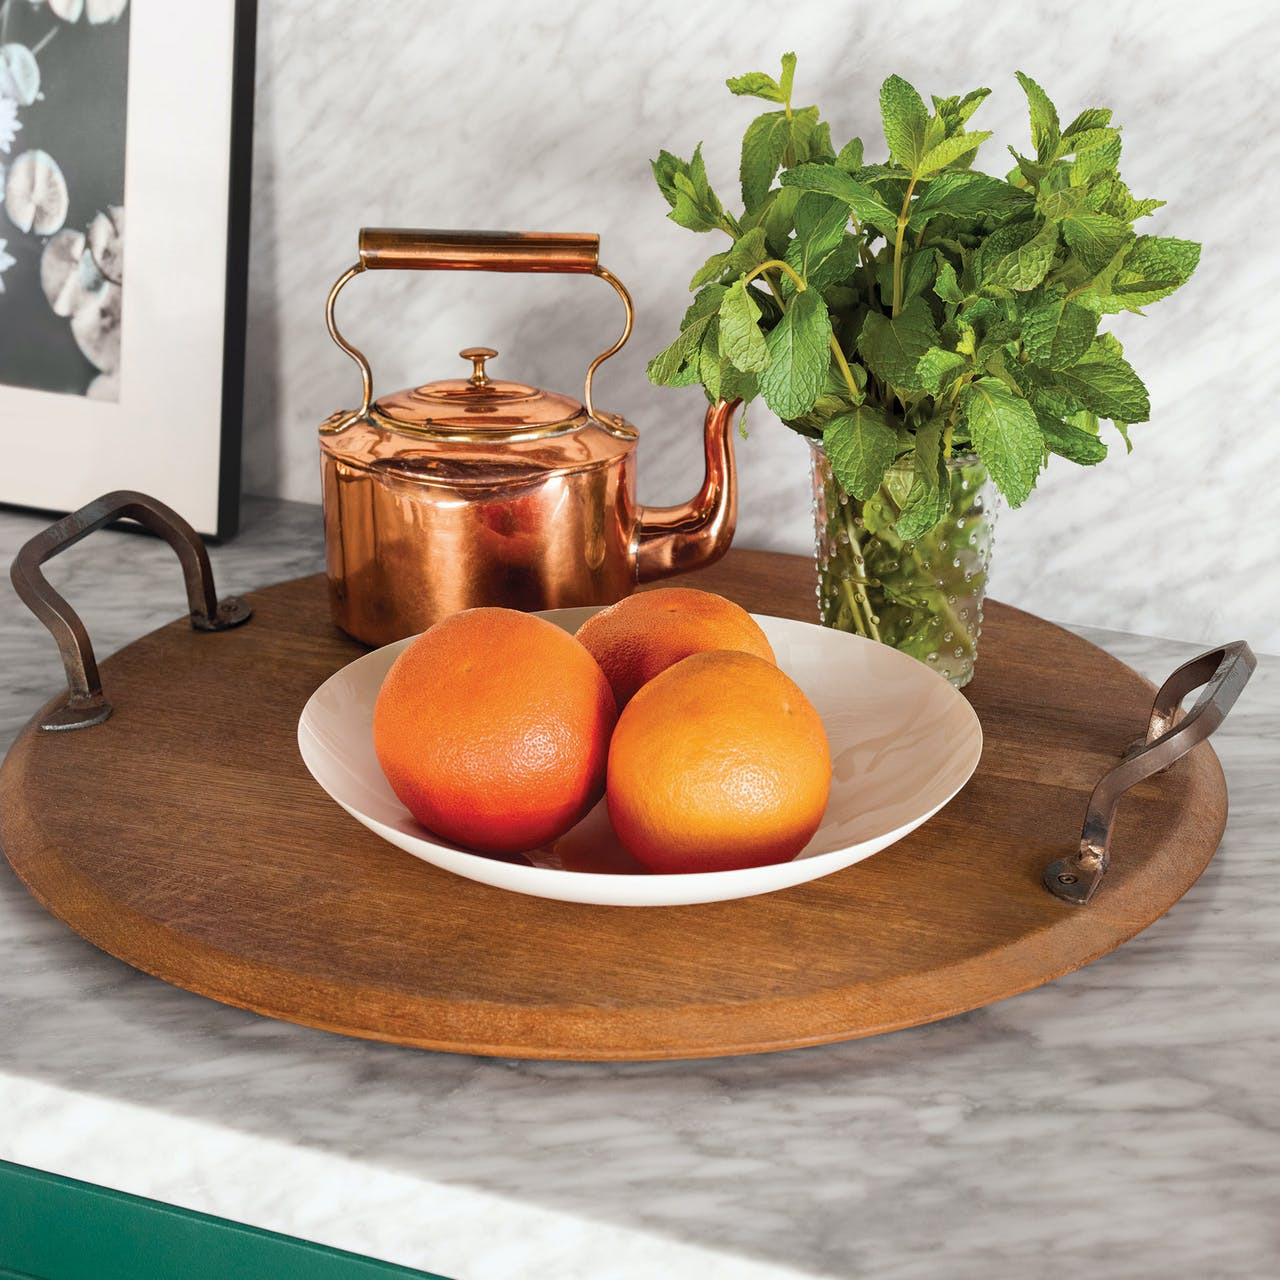 Copper teapot with mint